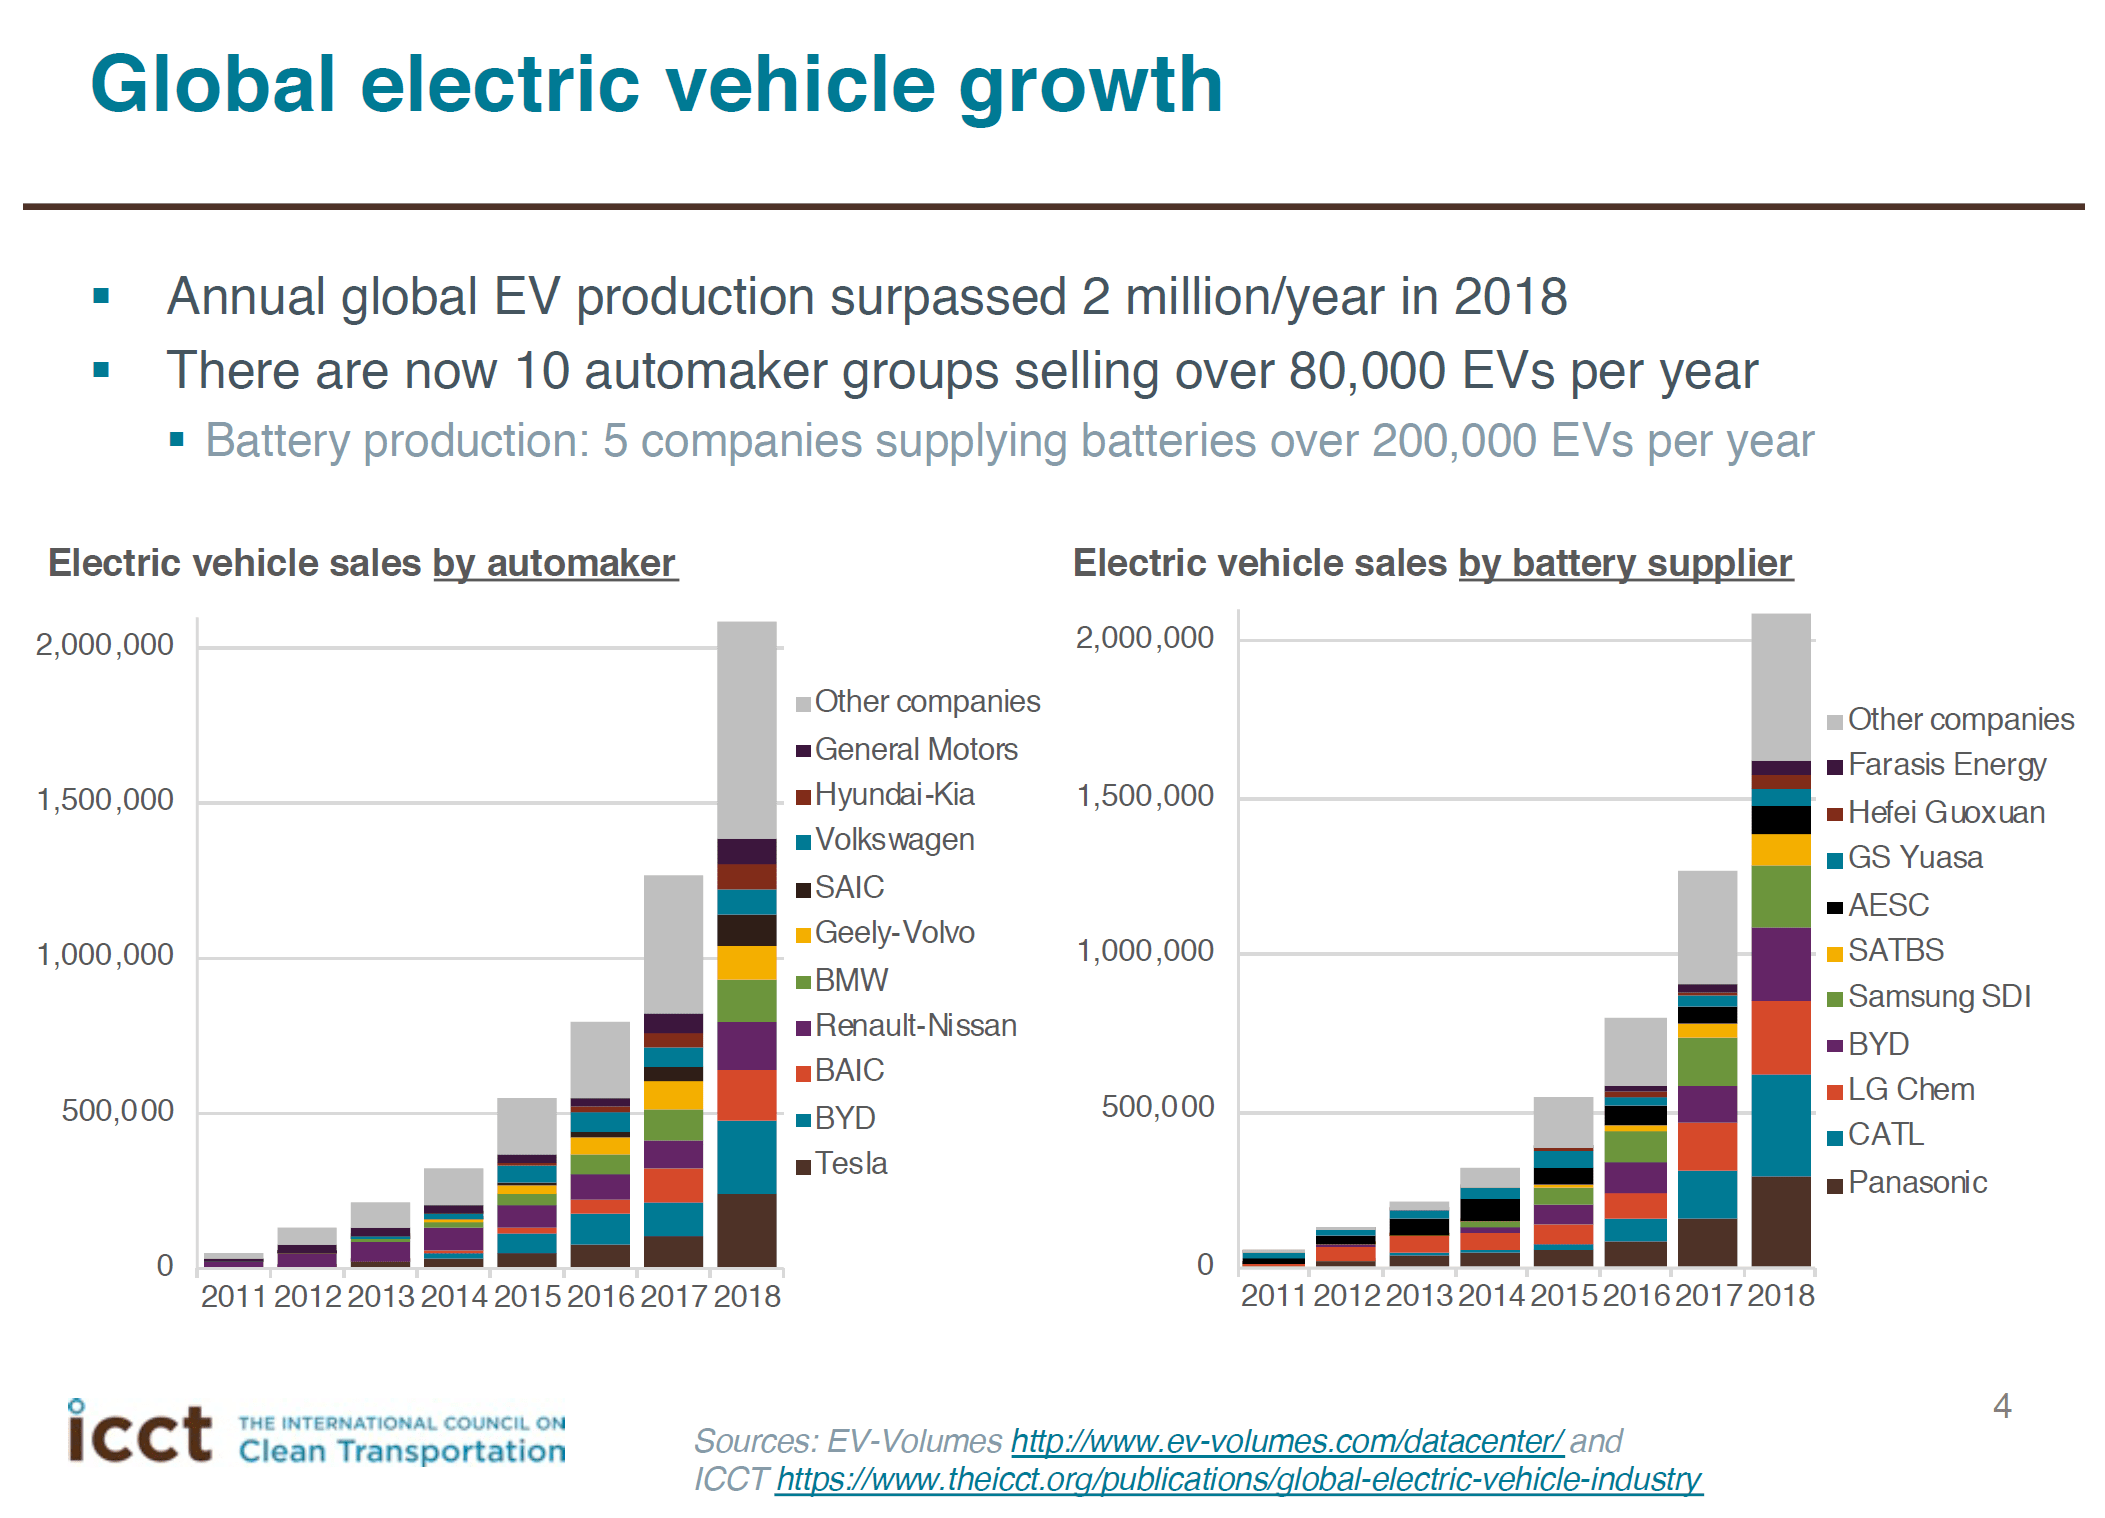 Global Electric Vehicle Growth Batery